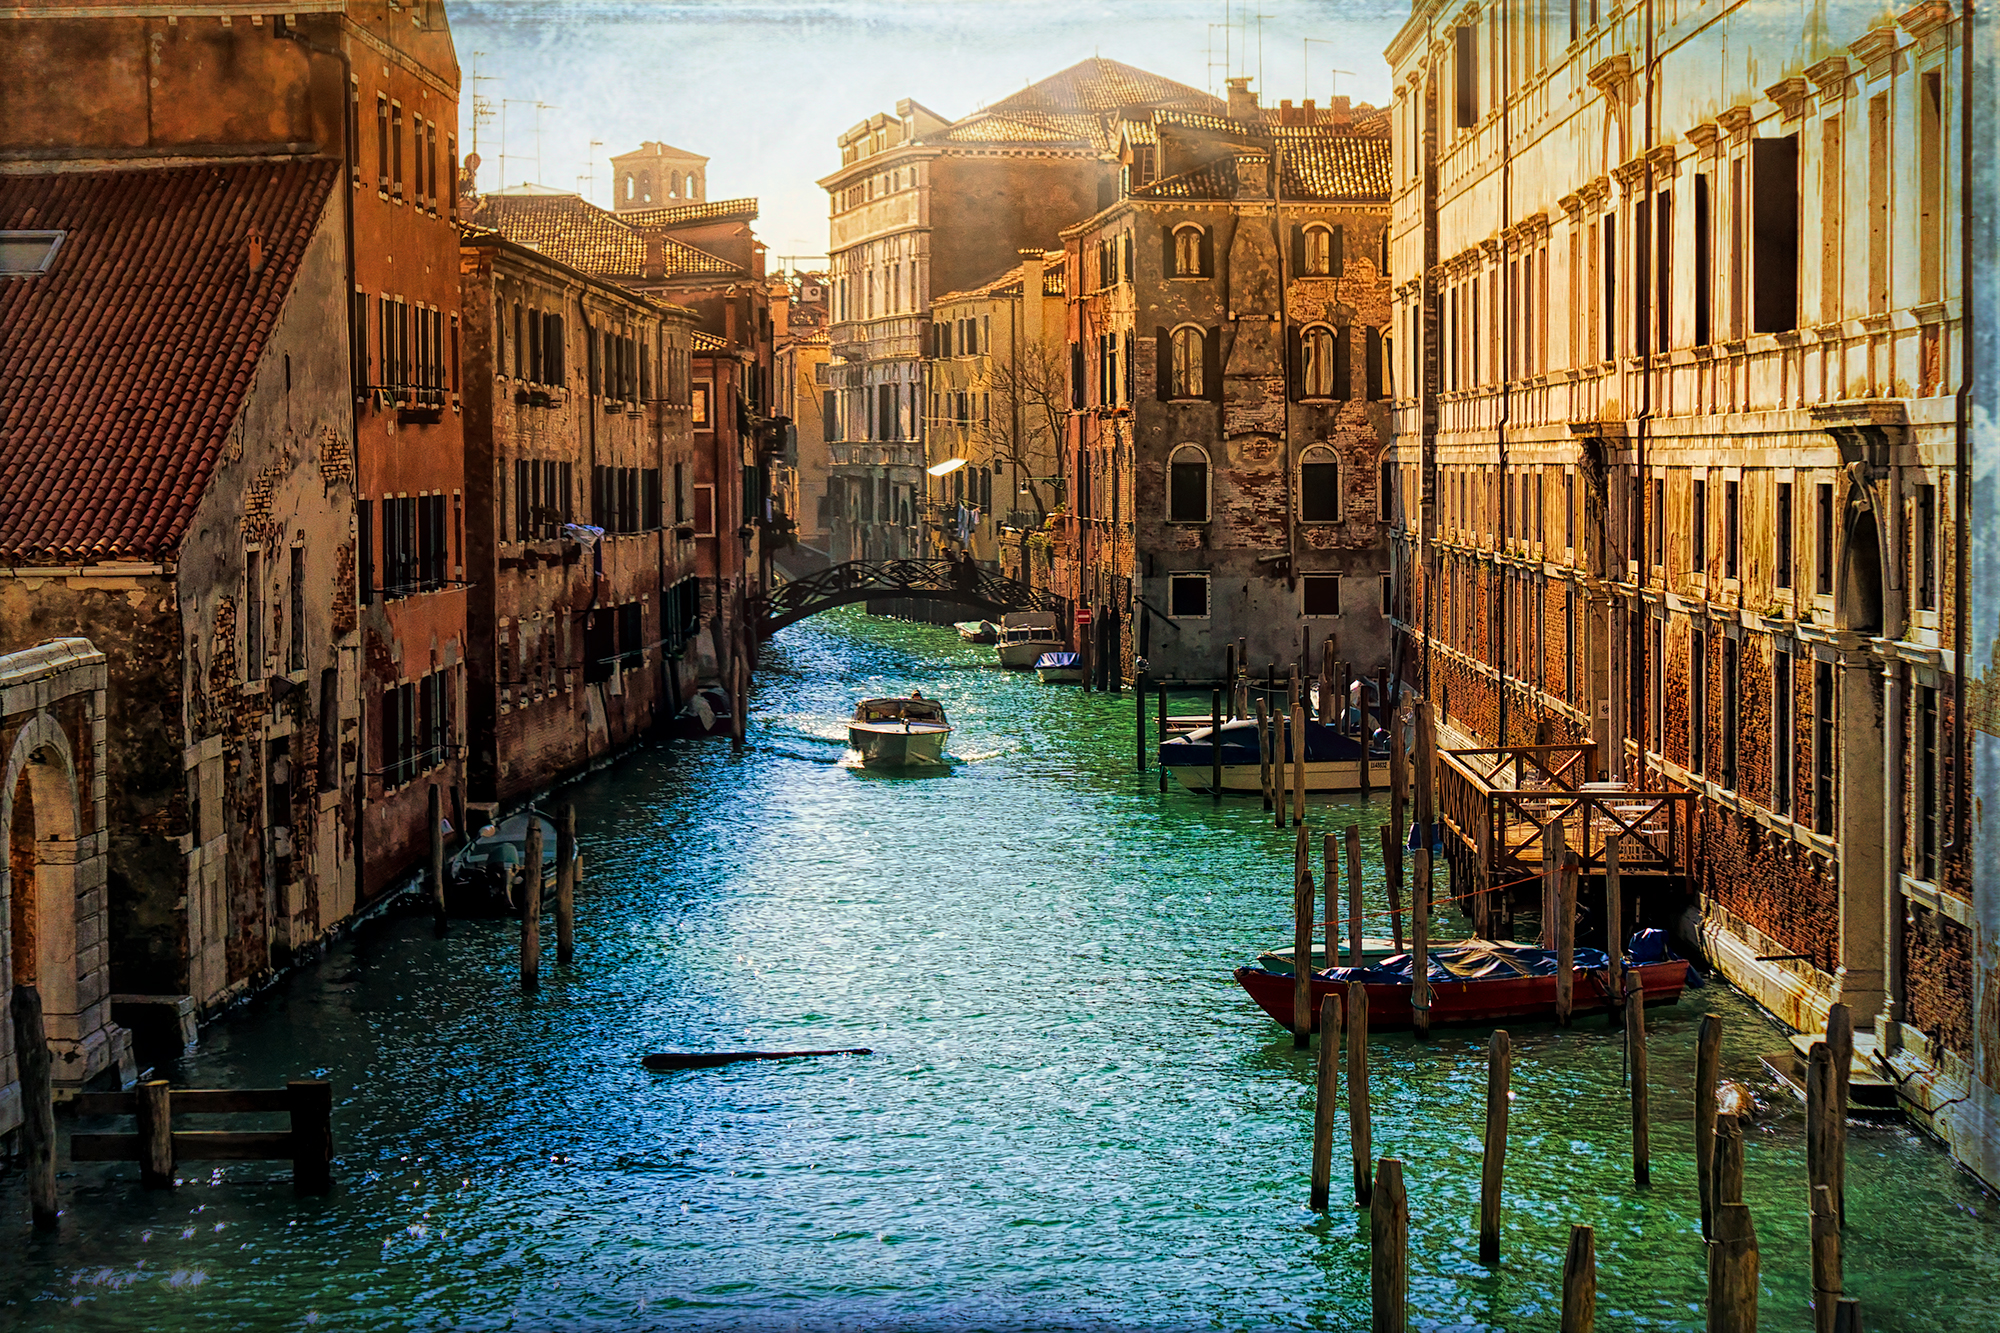 Textures of A Venetian Canal